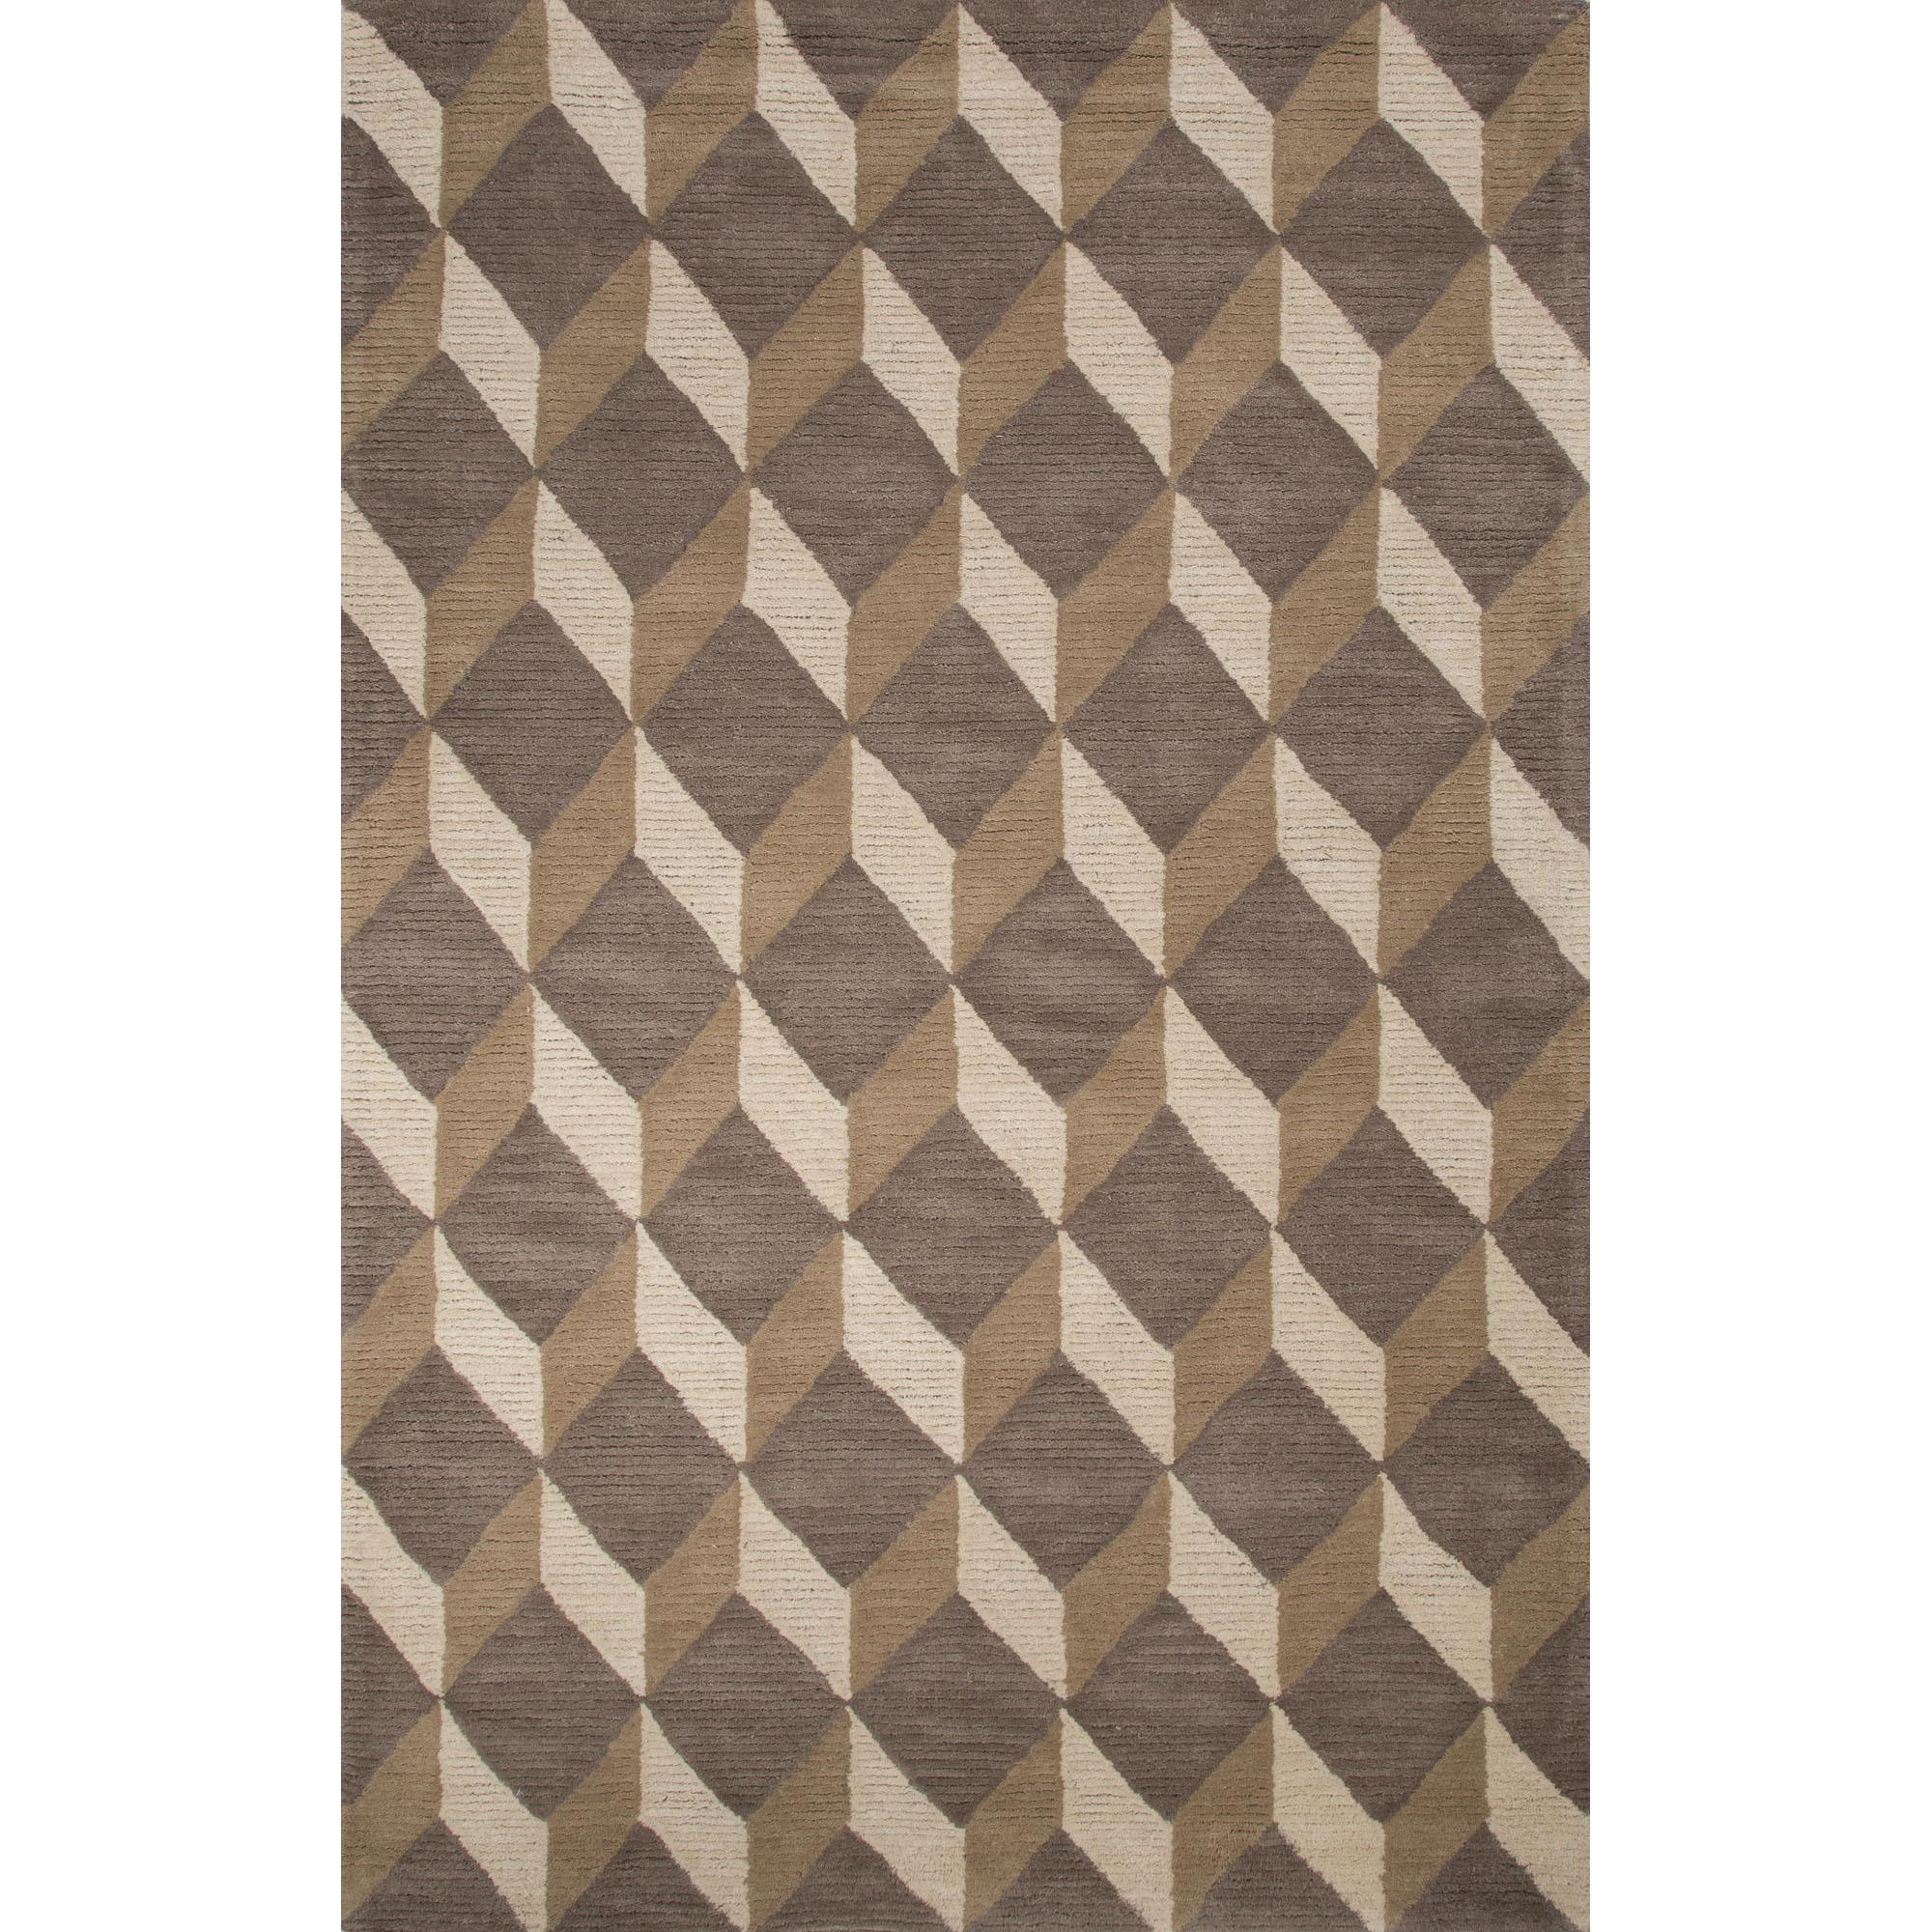 JAIPUR Rugs Bristol By Rug Republic 8 x 10 Rug - Item Number: RUG124515